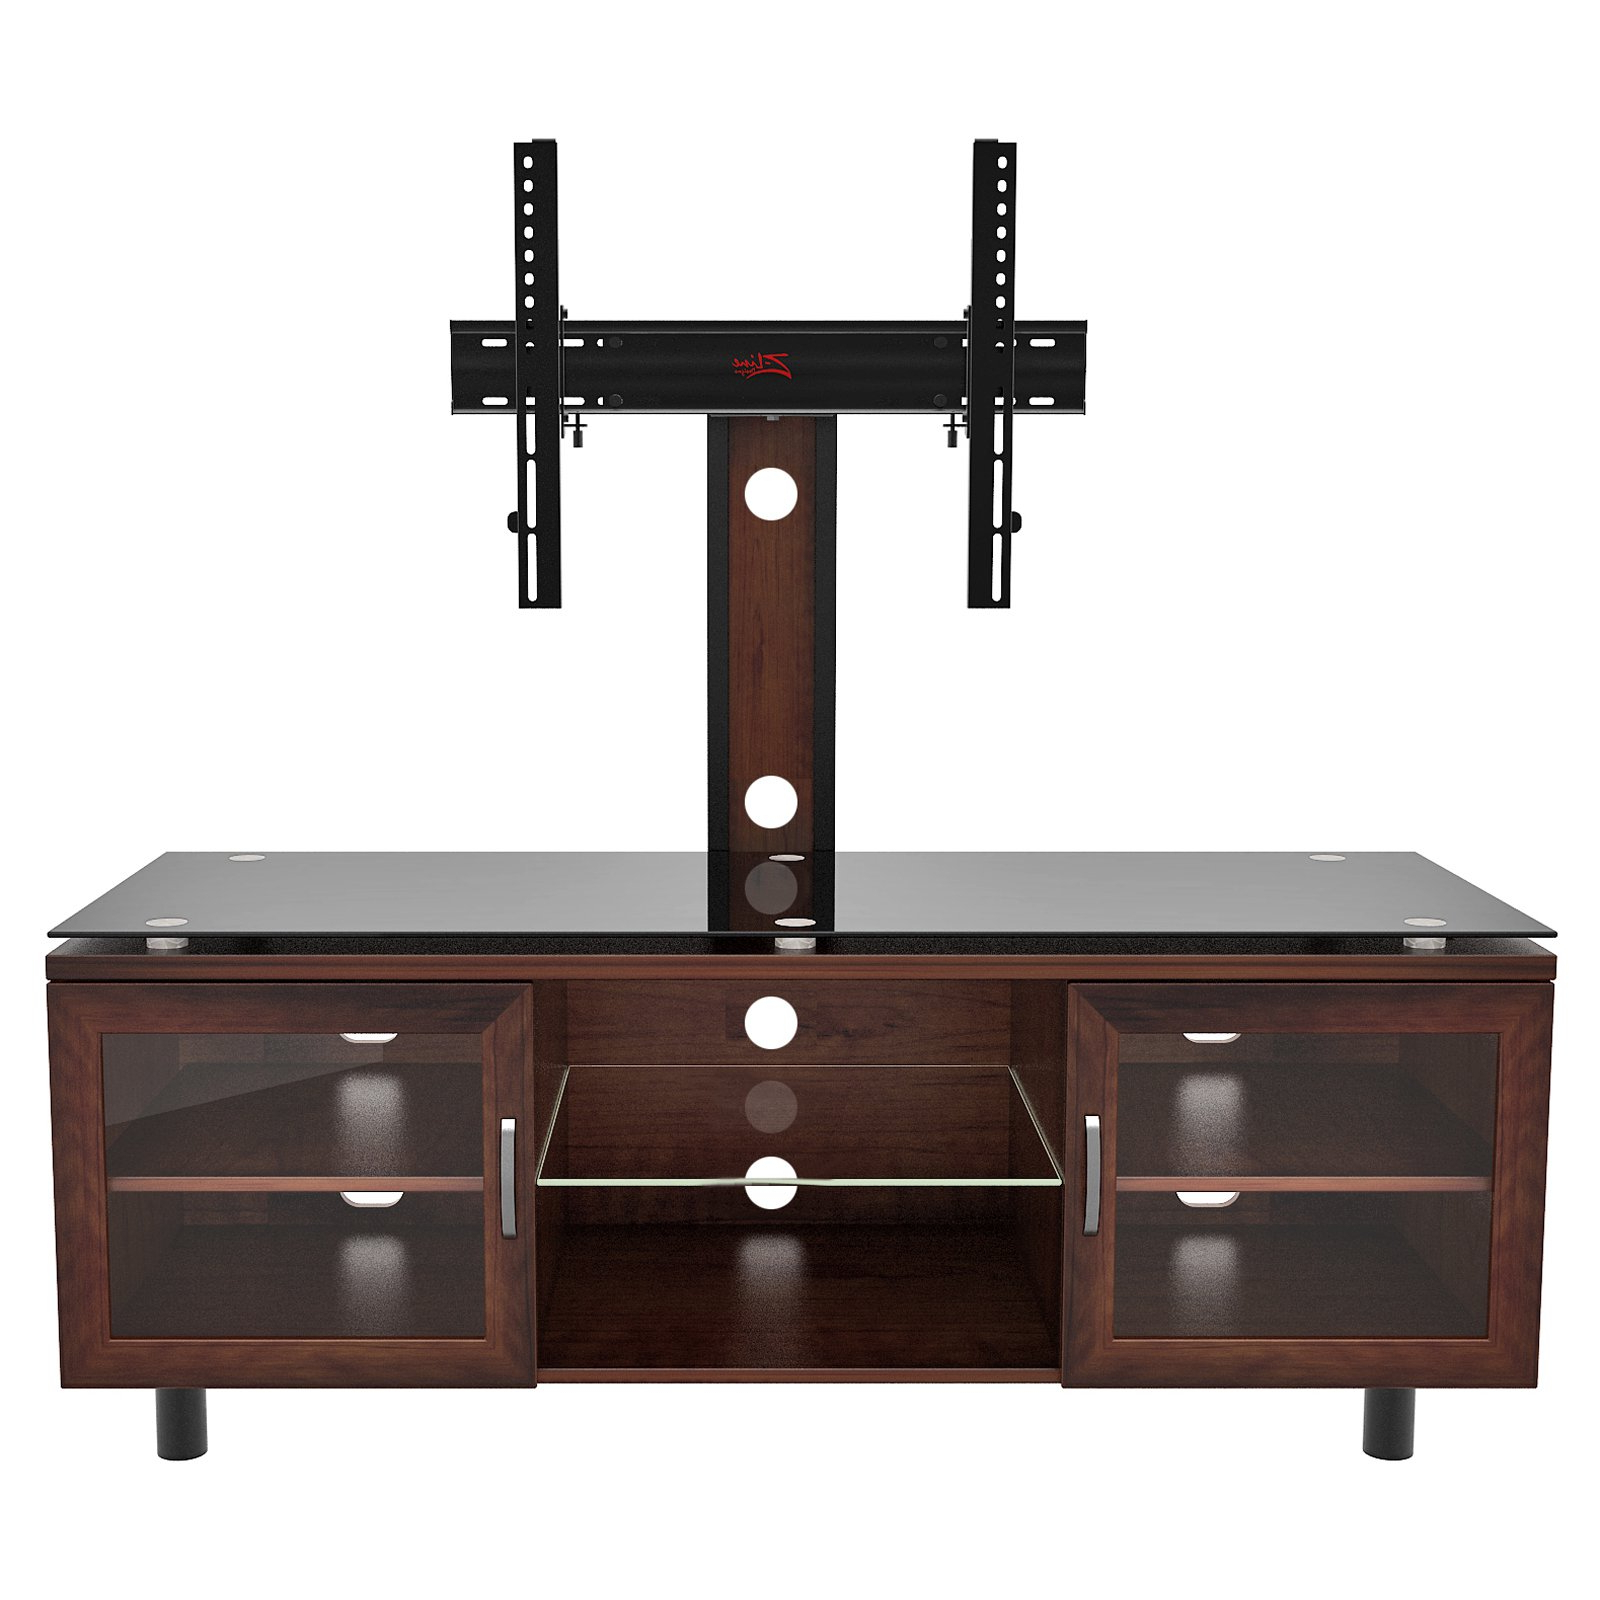 "65 Inch Tv Stands With Integrated Mount Regarding Most Up To Date Positano Tv Stand With Integrated Mount For Tvs Up To 70"", Espresso (View 5 of 20)"